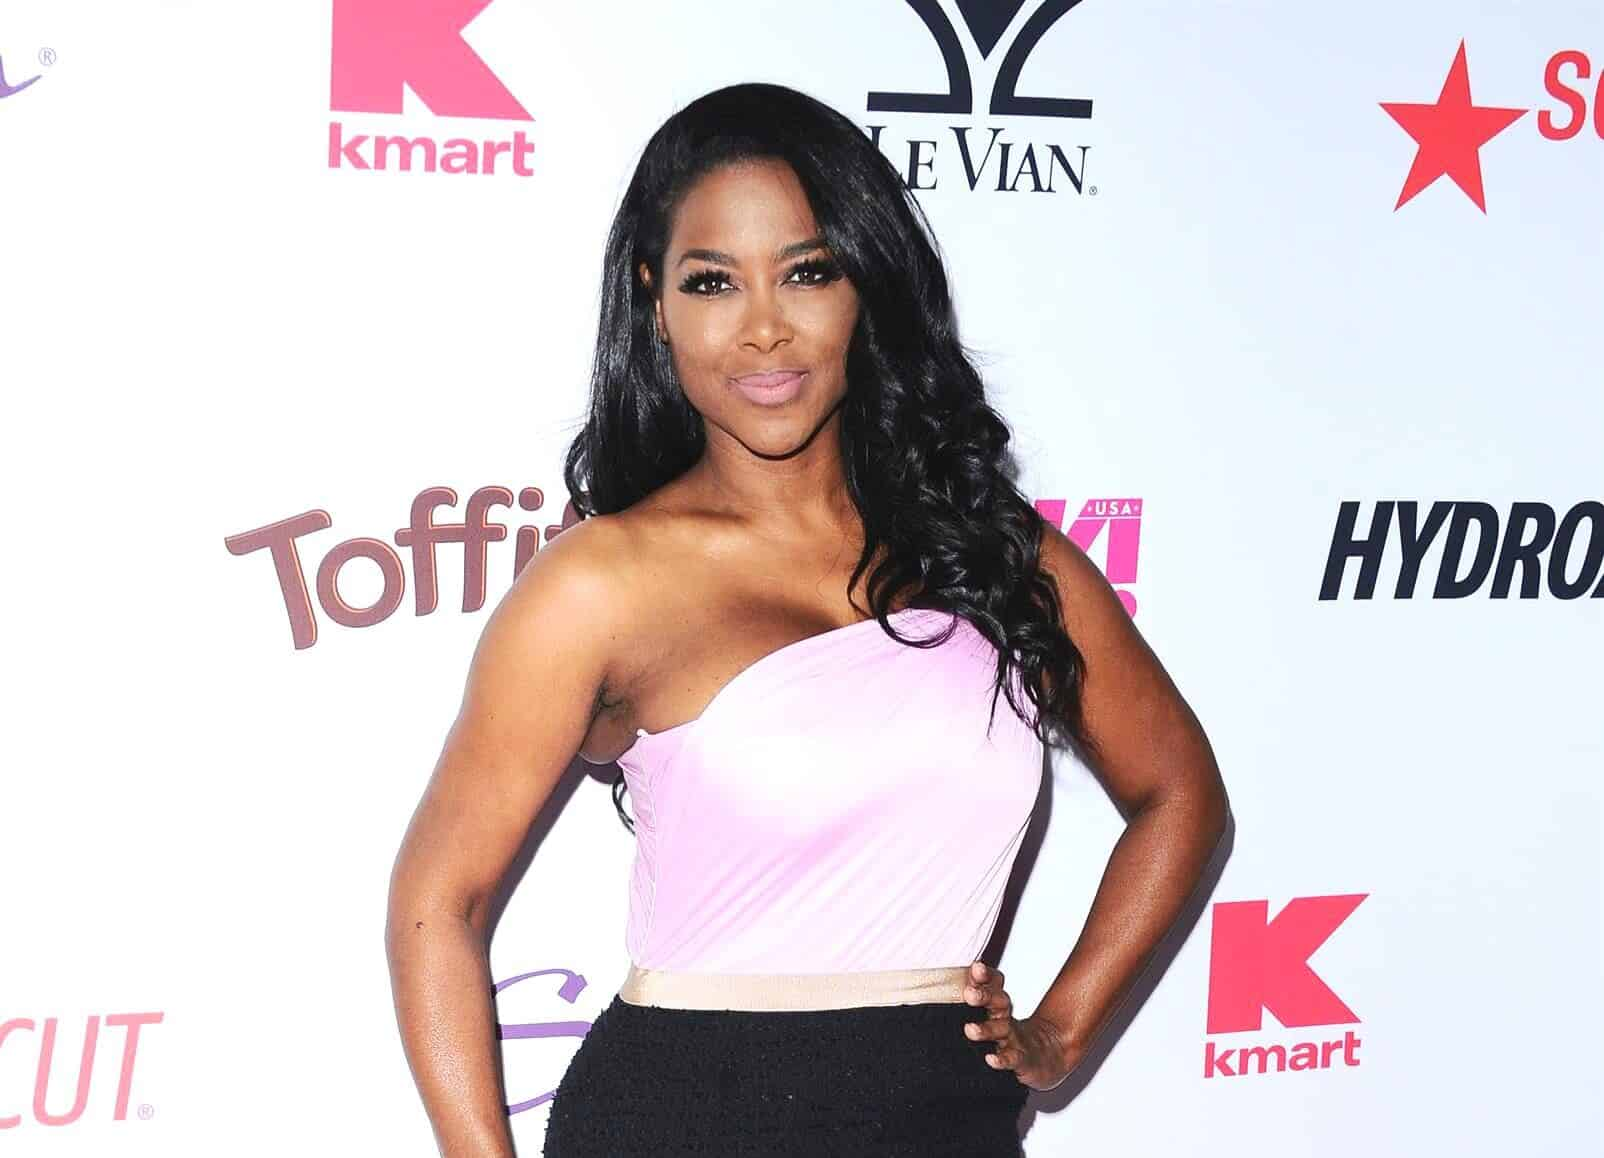 Kenya Moore Seemingly Admits to Leaking Bachelorette Drama to Blog, Dishes on Scenes That Were Cut From RHOA This Season and Shares Why Falynn Deserves a Peach, Plus She Shades LaToya as 'Disloyal'